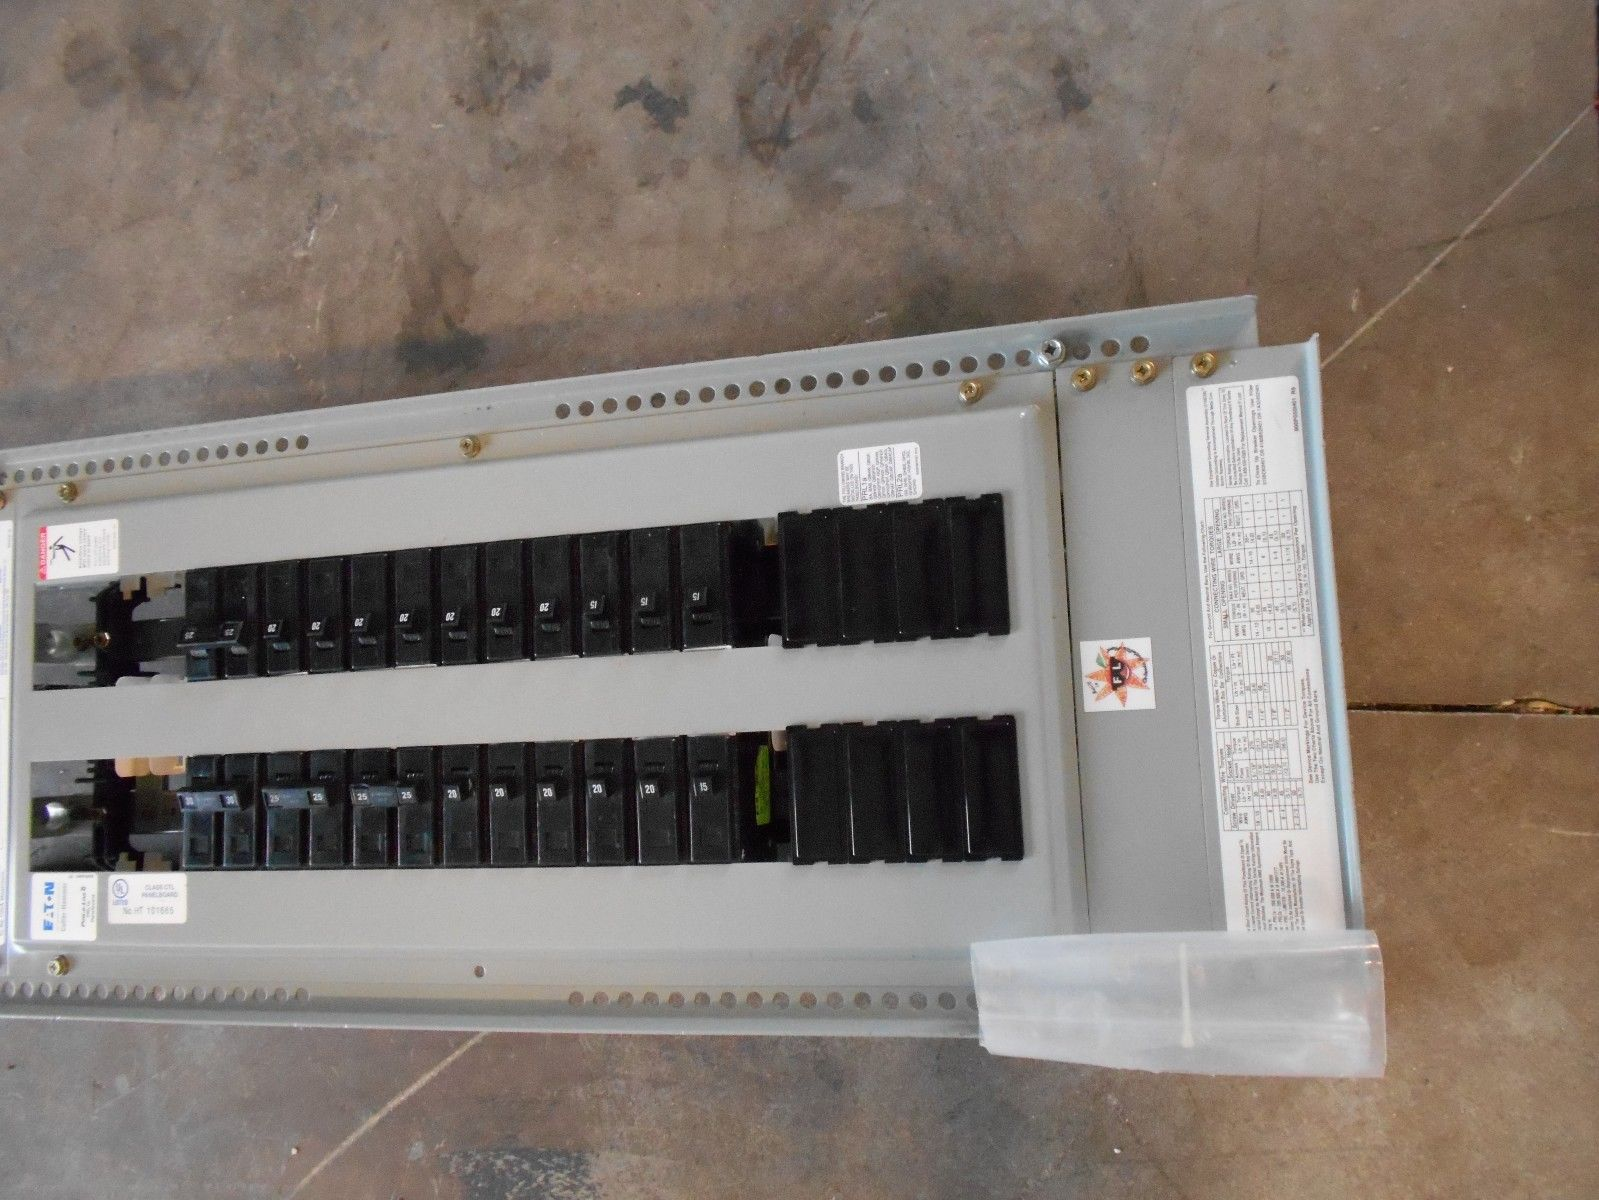 On 3 Phase Or 1 Phase Wiring Has To Be Changed To Operate On 1 Phase